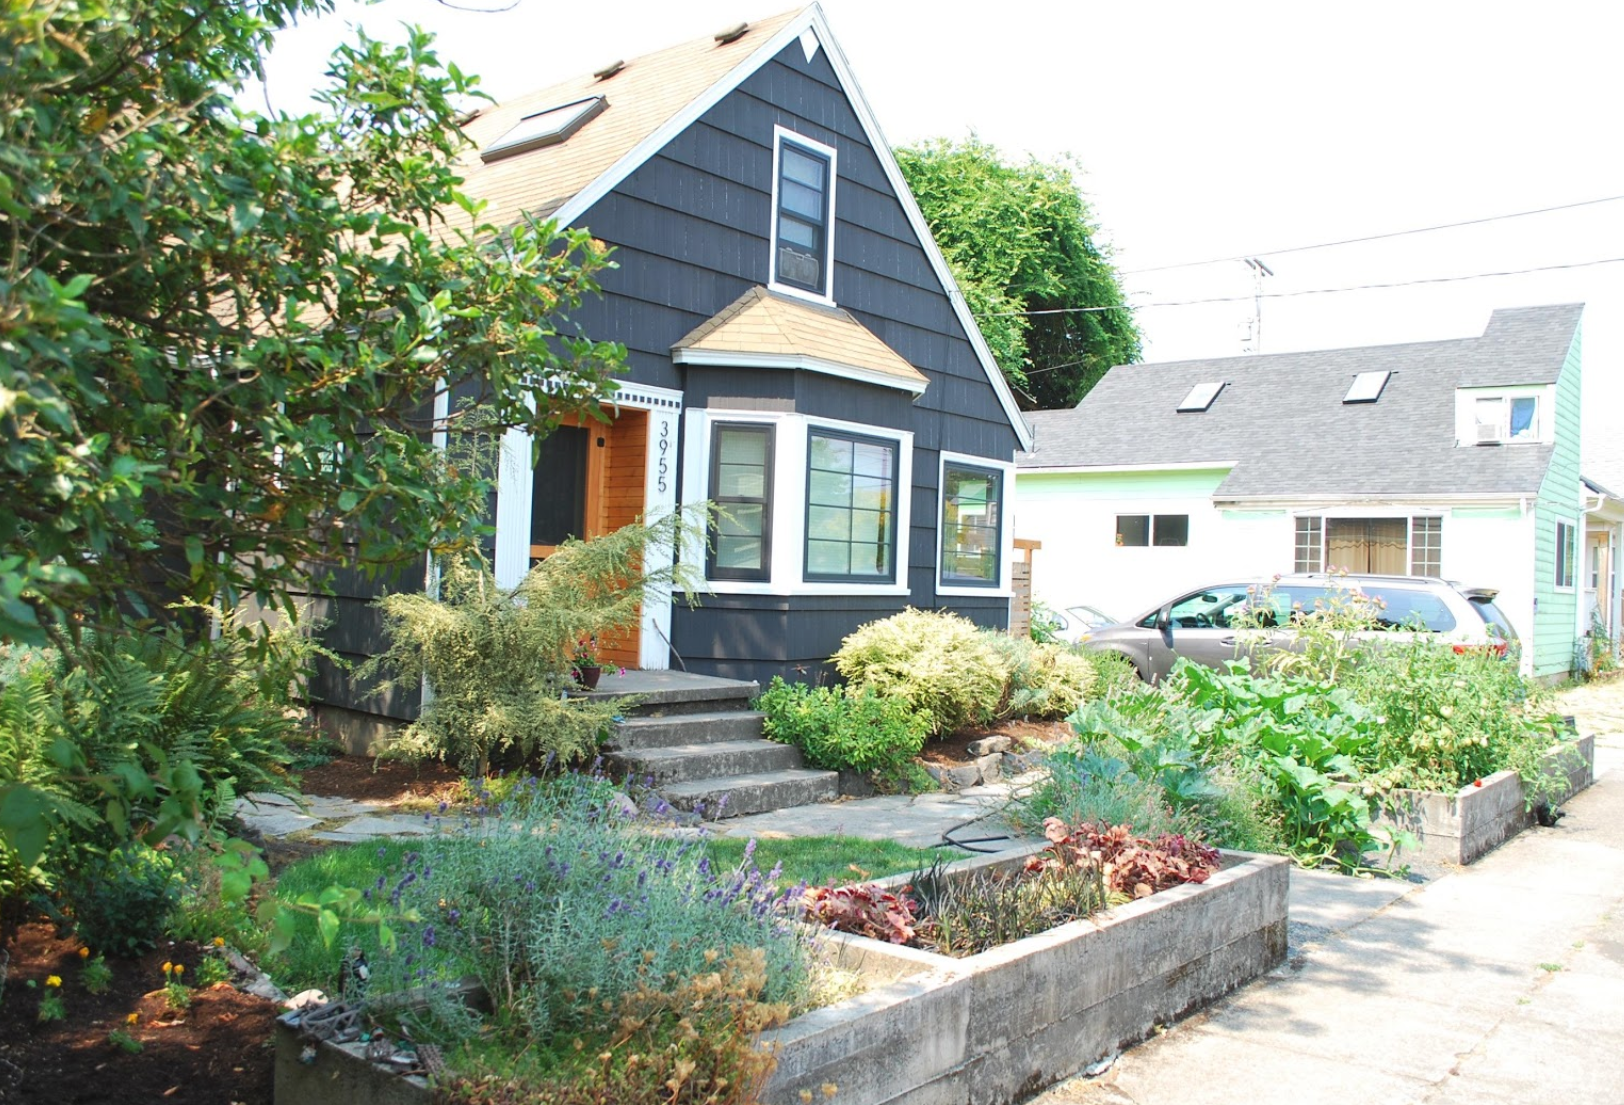 Traditional site design; stoop and green space